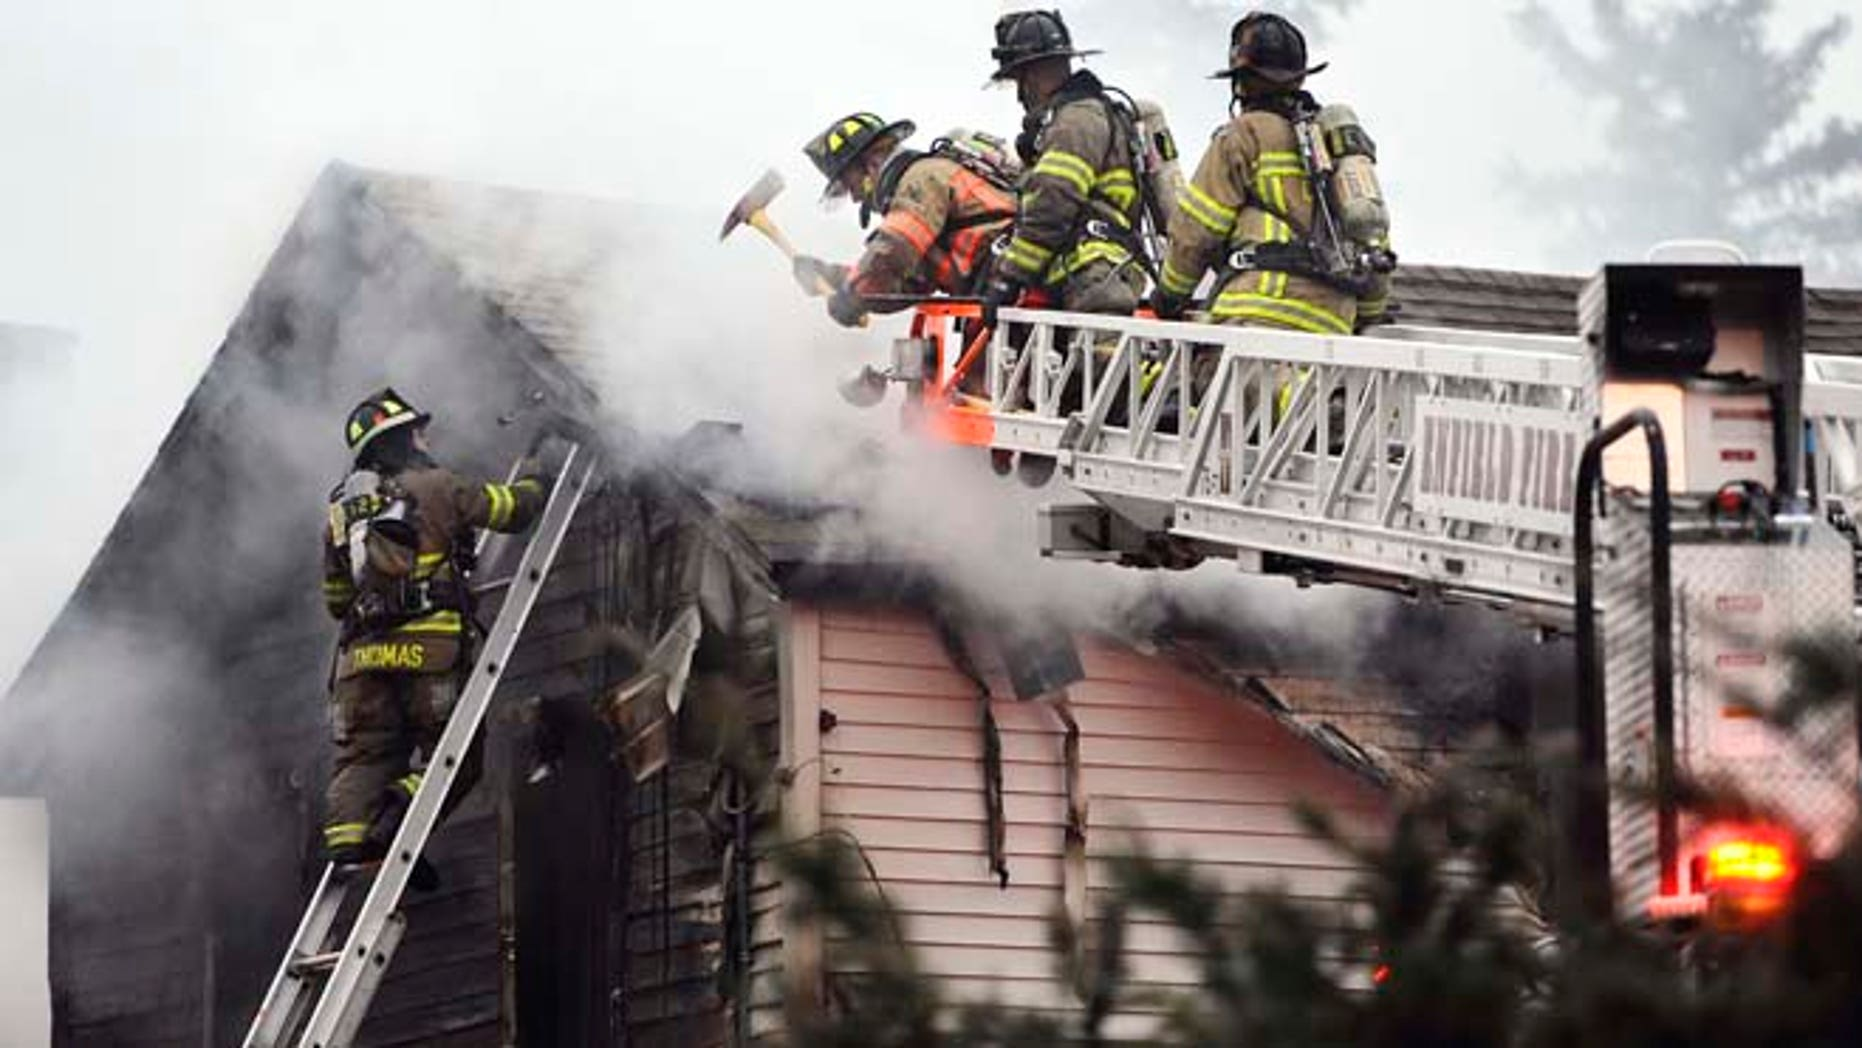 Firefighters control a house fire where  fire officials said four people were reportedly unaccounted for, Wednesday, Dec. 10, 2014, in Enfield, Conn., about 20 miles northeast of Hartford. (AP Photo/Journal Inquirer, Jessica Hill) MANDATORY CREDI